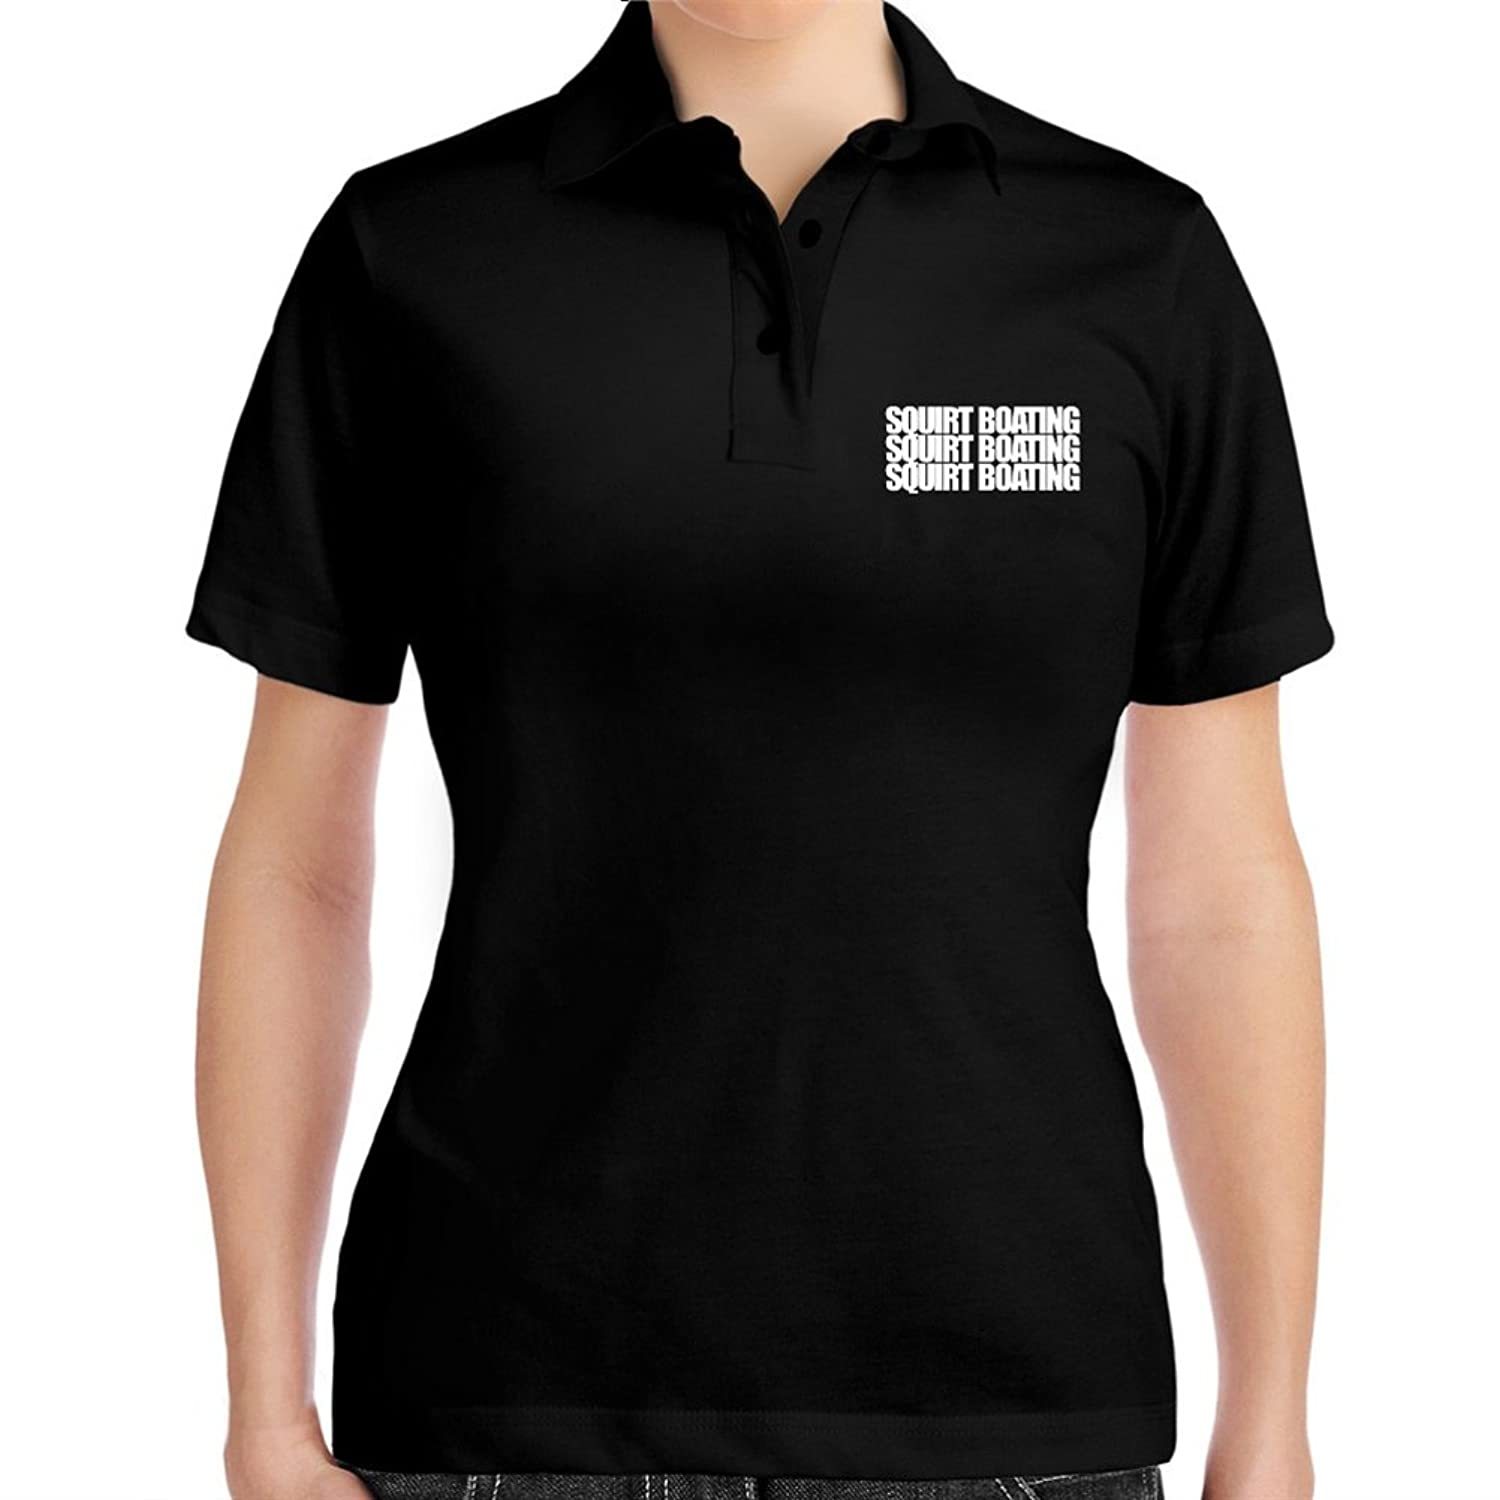 Squirt Boating three words Women Polo Shirt